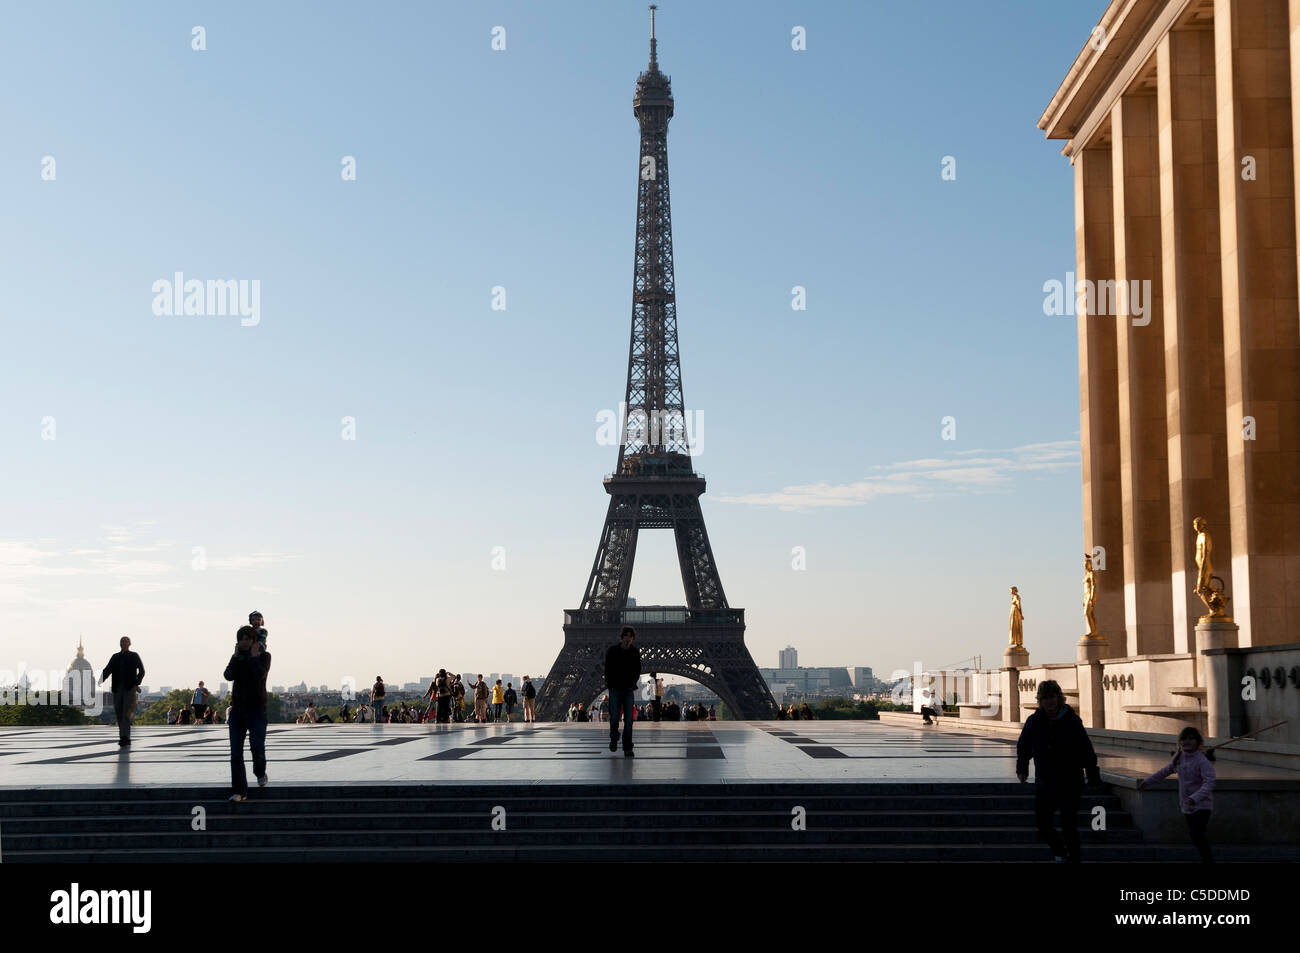 palais du trocad ro et la tour eiffel trocadero palace and eiffel stock photo royalty free. Black Bedroom Furniture Sets. Home Design Ideas